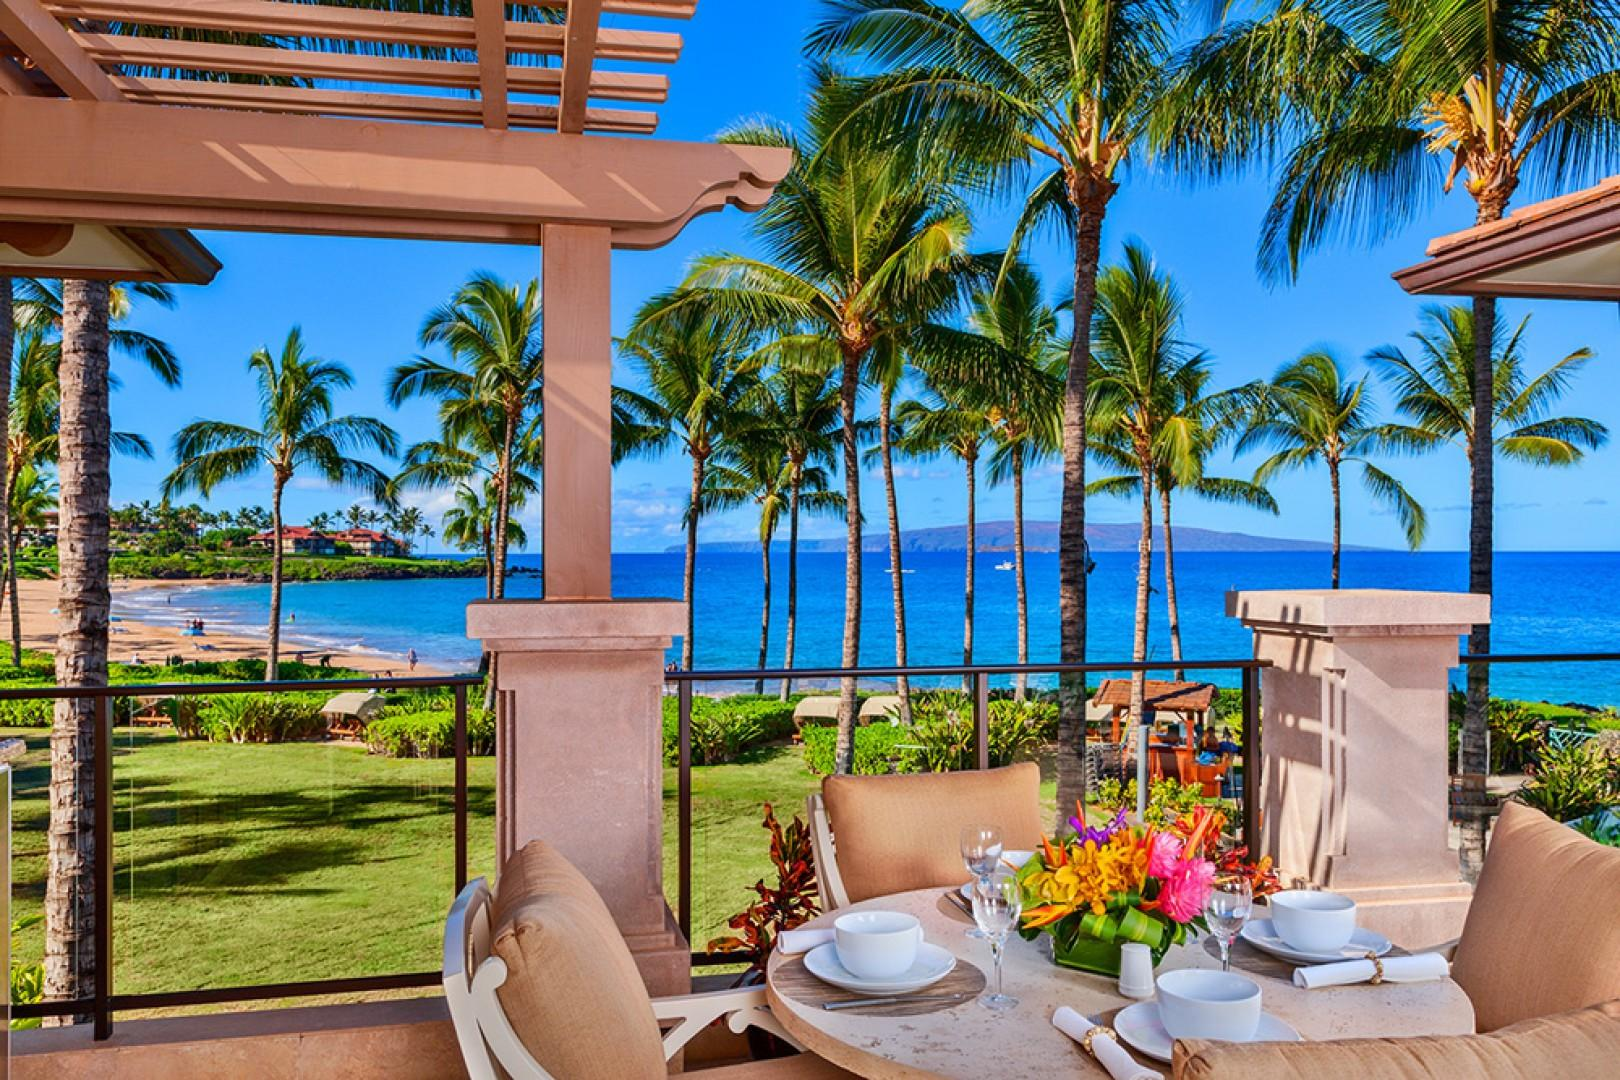 Your View From A201 Royal Ilima At Wailea Beach Villas - Direct Ocean and Beach Front Villa. The covered